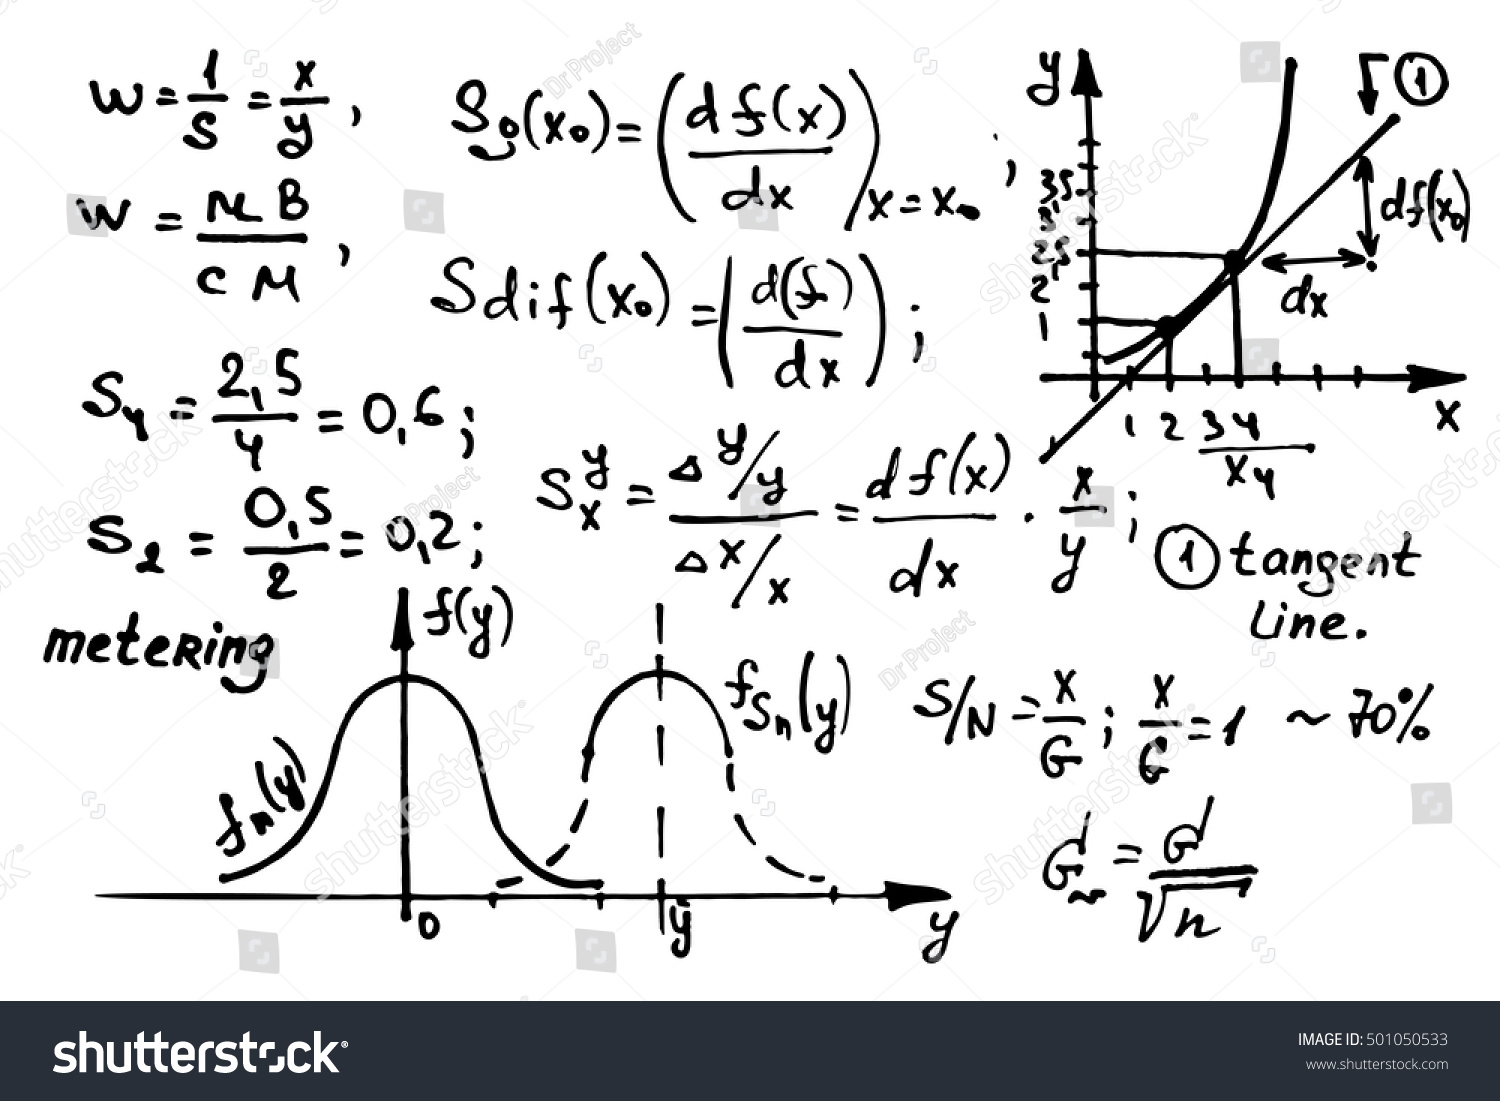 Mathematics Equations On Whiteboard Education Vector Stock Vector ...